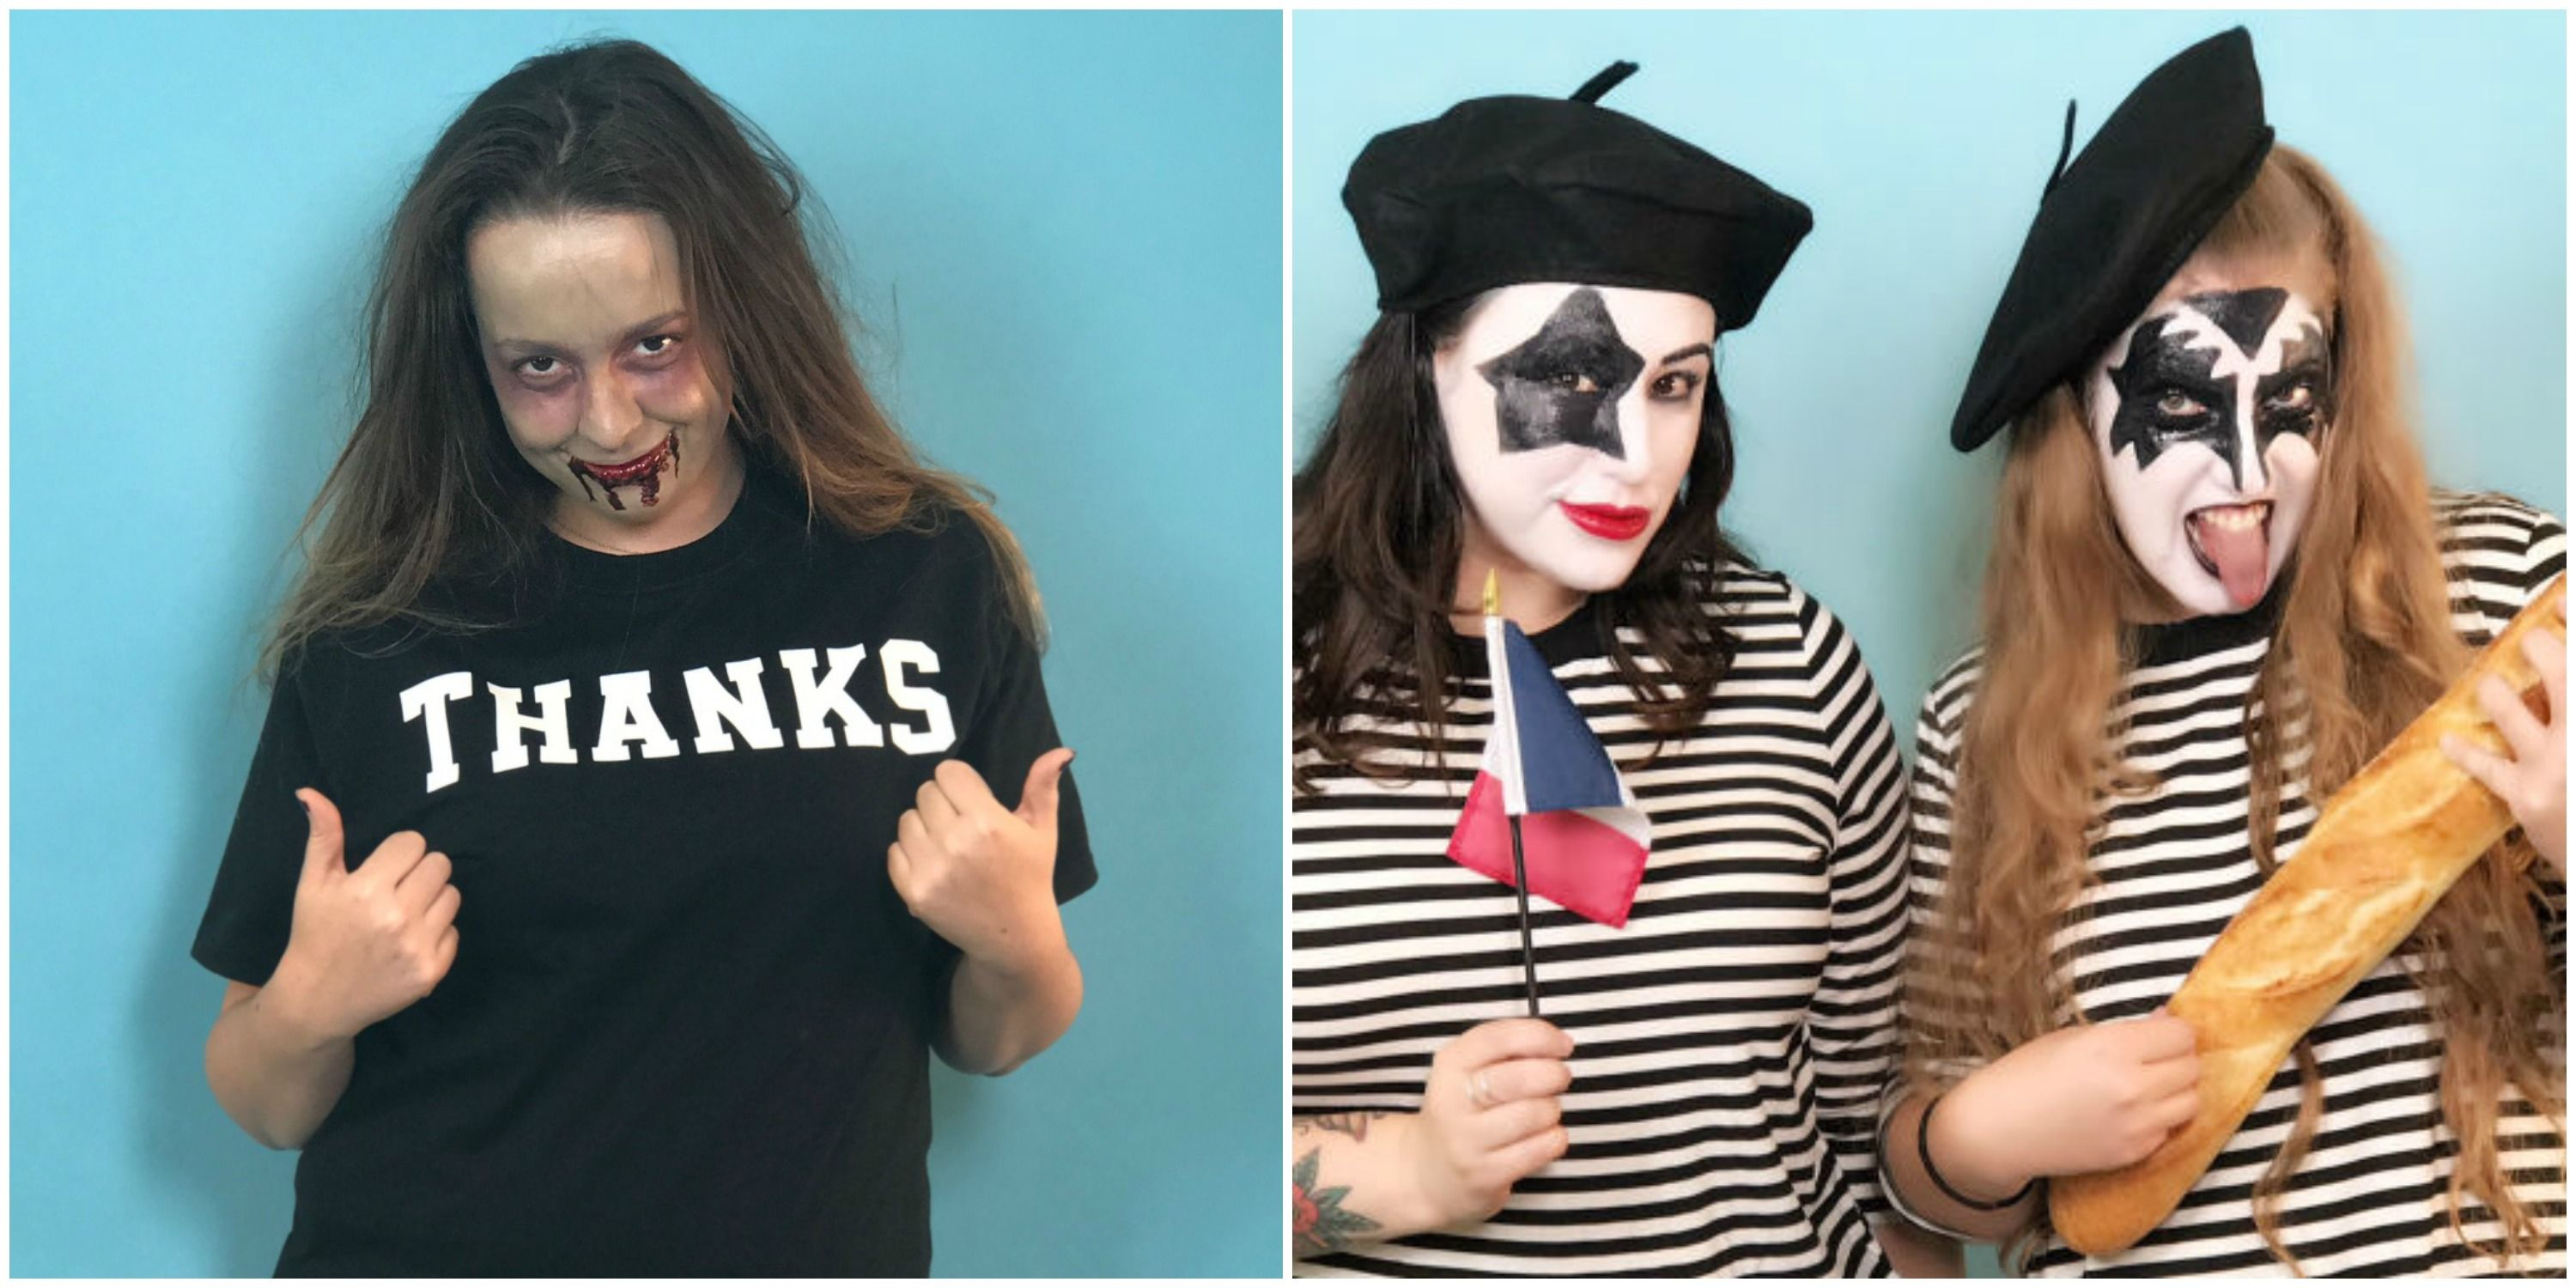 30 Funny Pun Halloween Costumes 2017 - Hilarious Ideas for Halloween ...